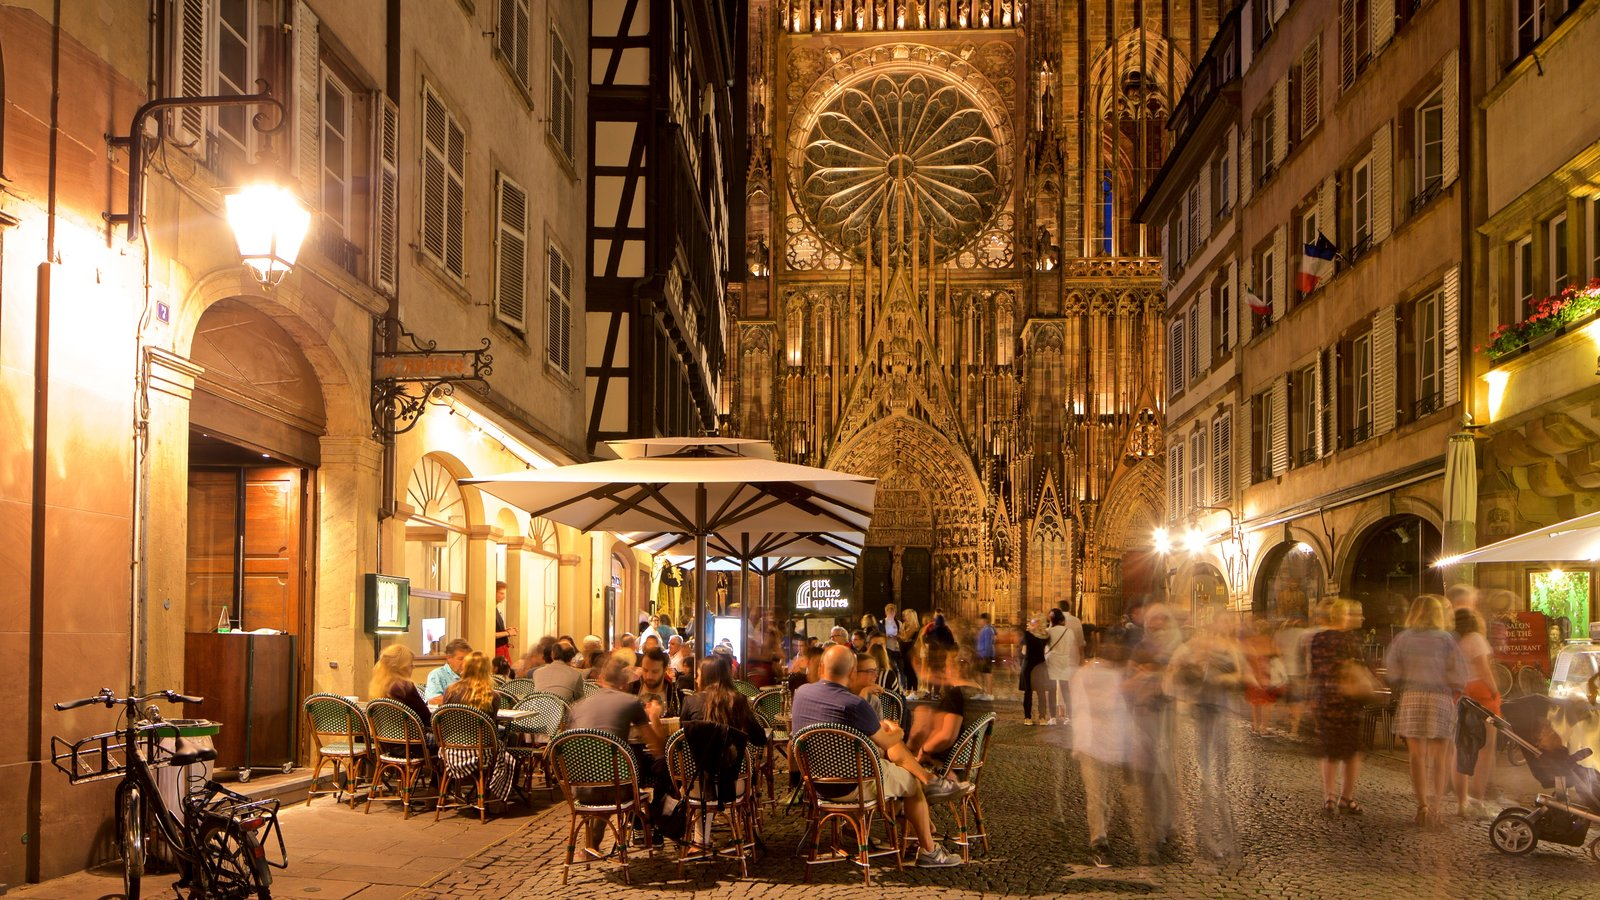 Our Lady of Strasbourg Cathedral showing street scenes, night scenes and a church or cathedral